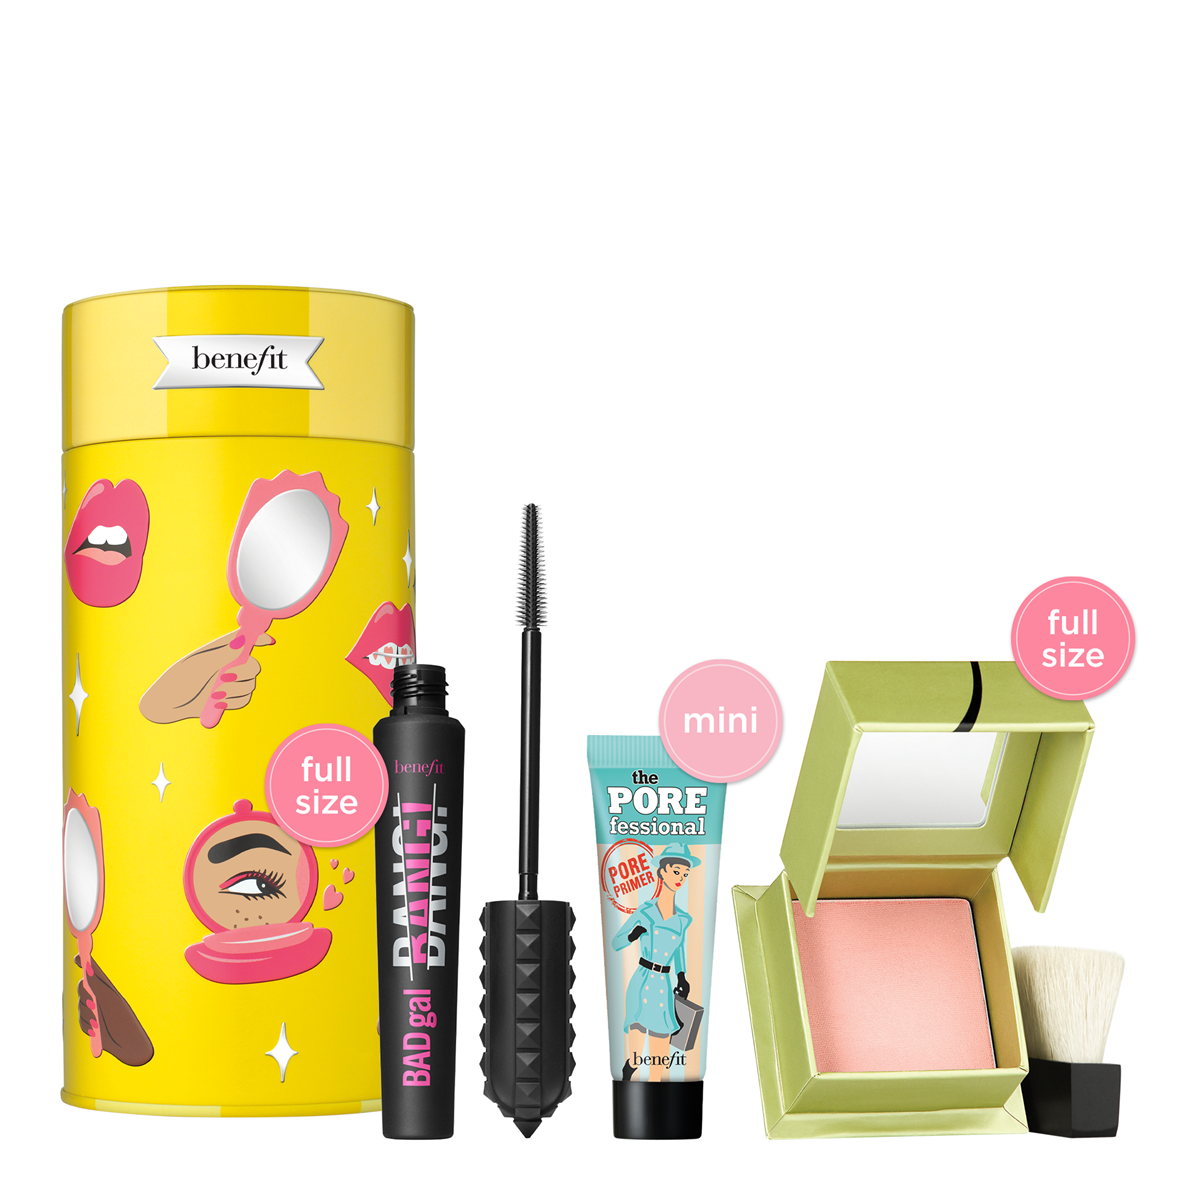 Benefit Cosmetics Life is a Pretty Party holiday product styled.